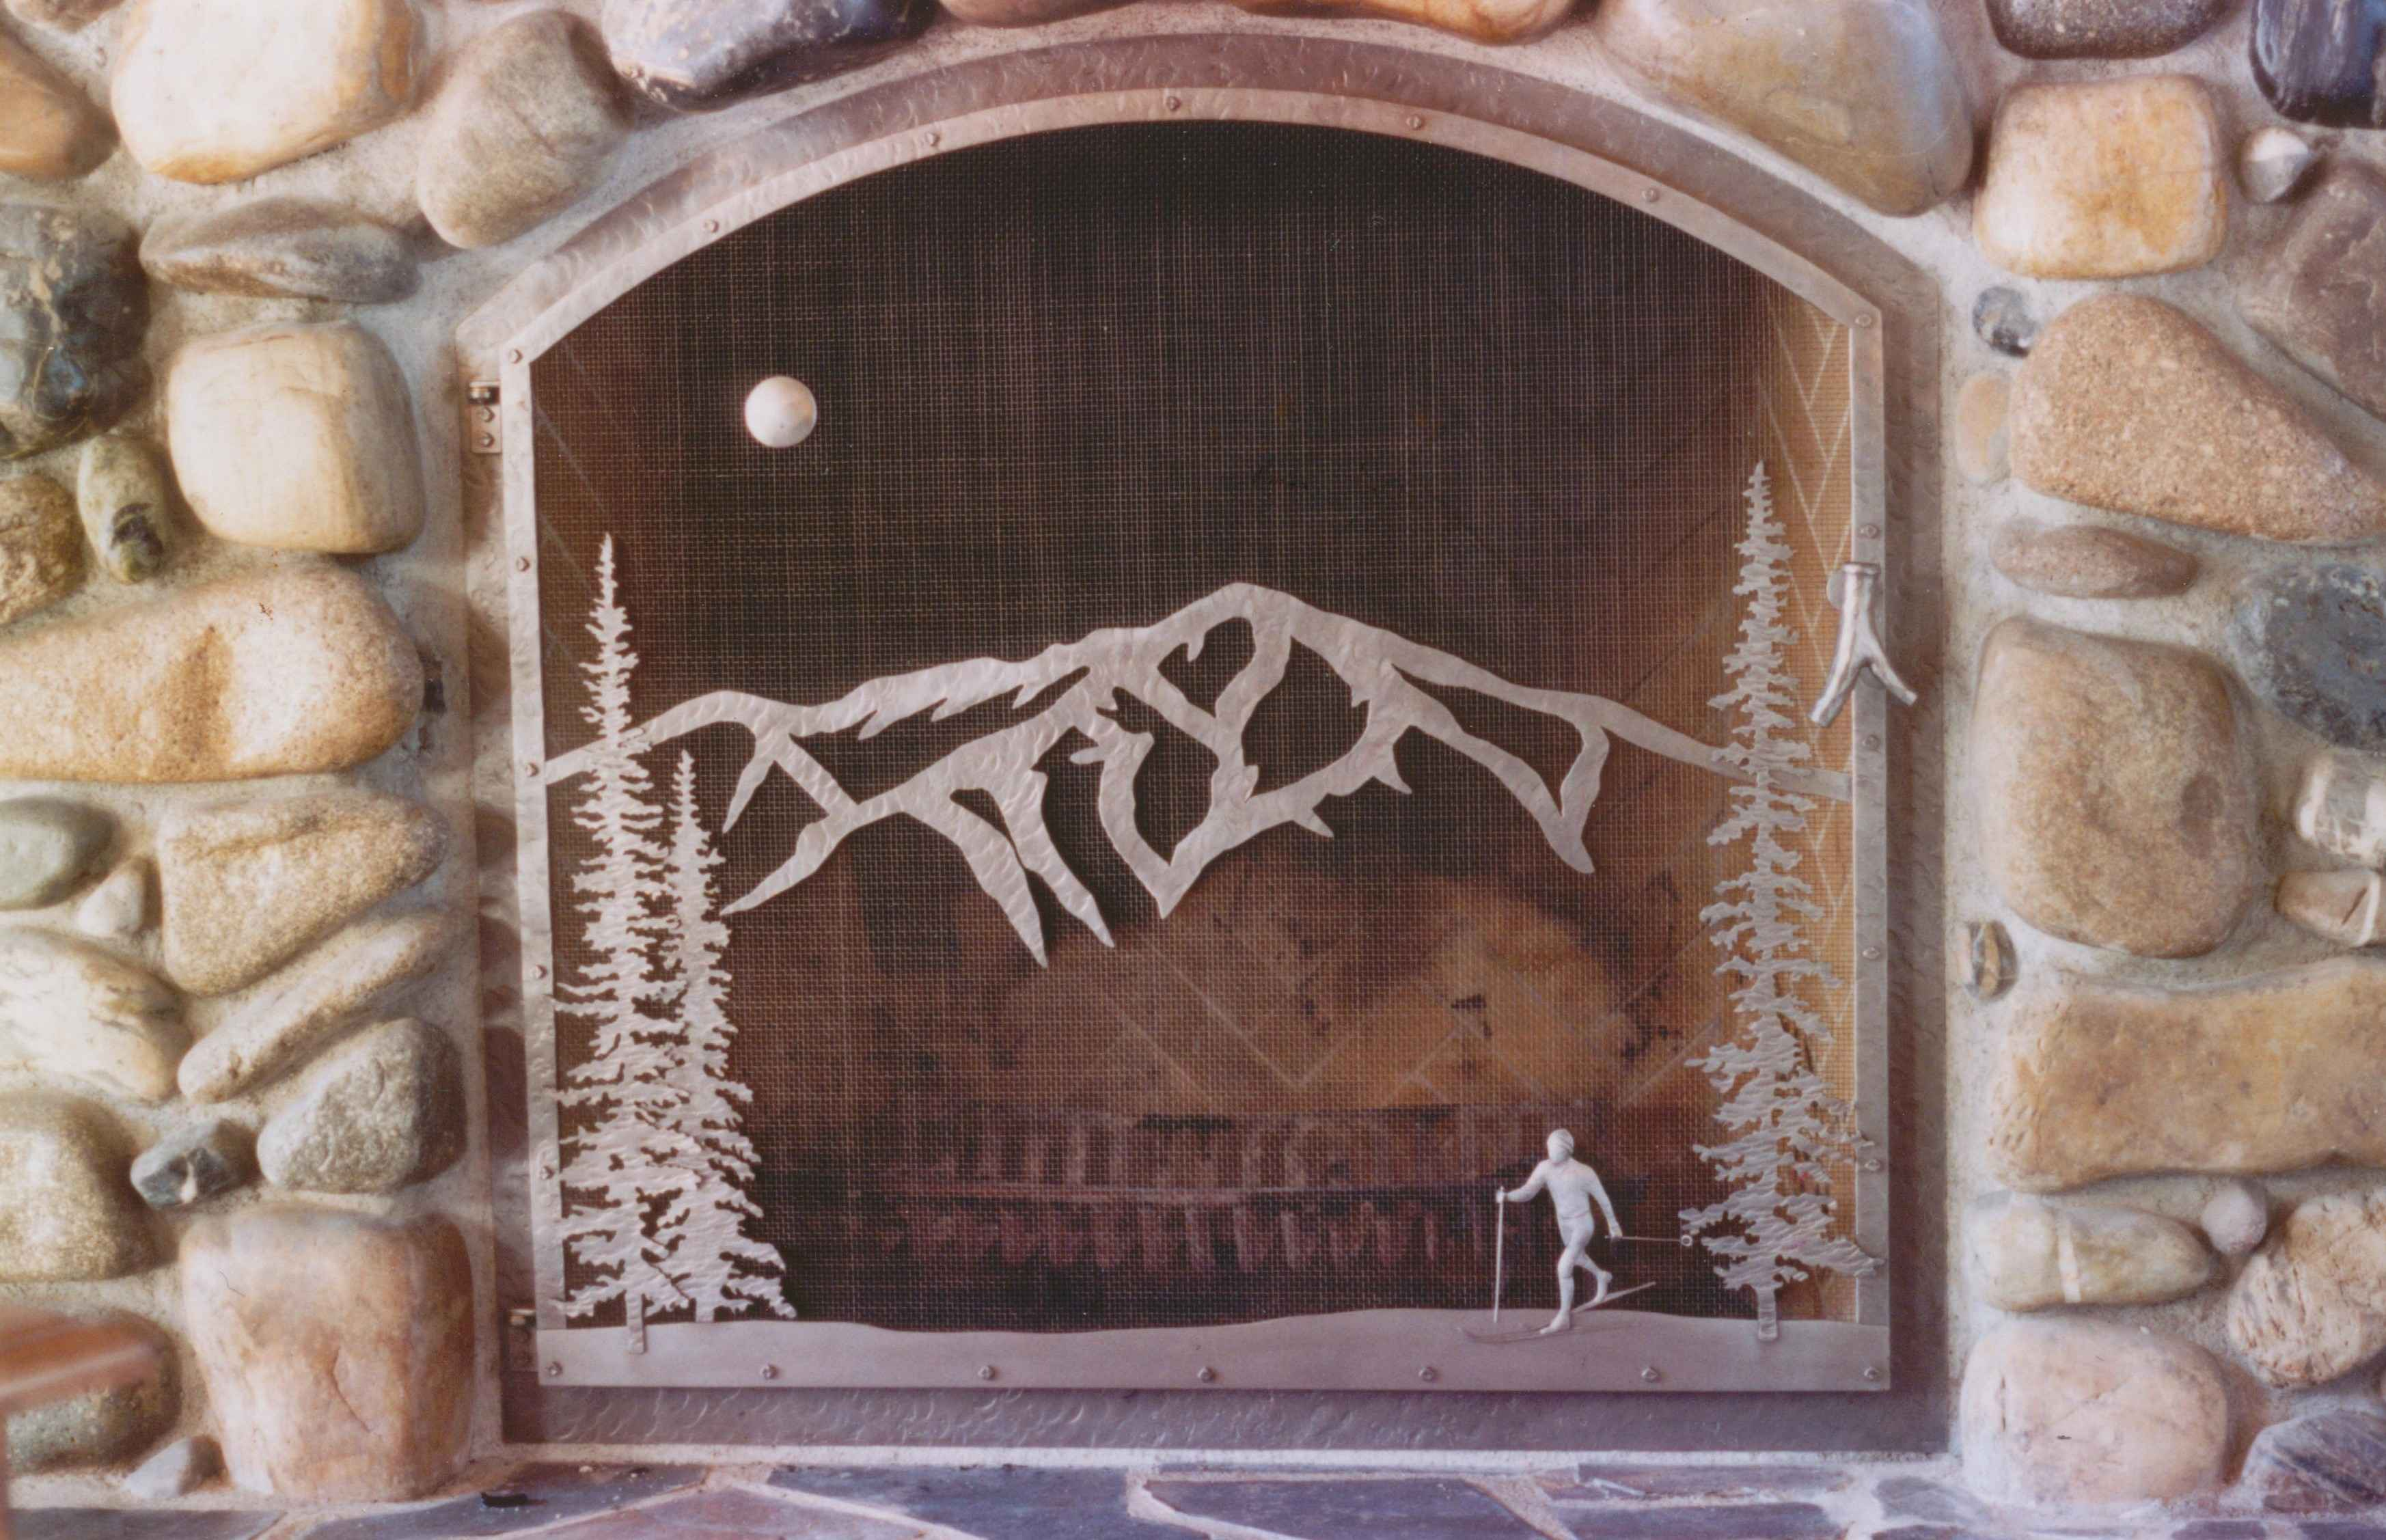 Bald mountain with skier fire screen